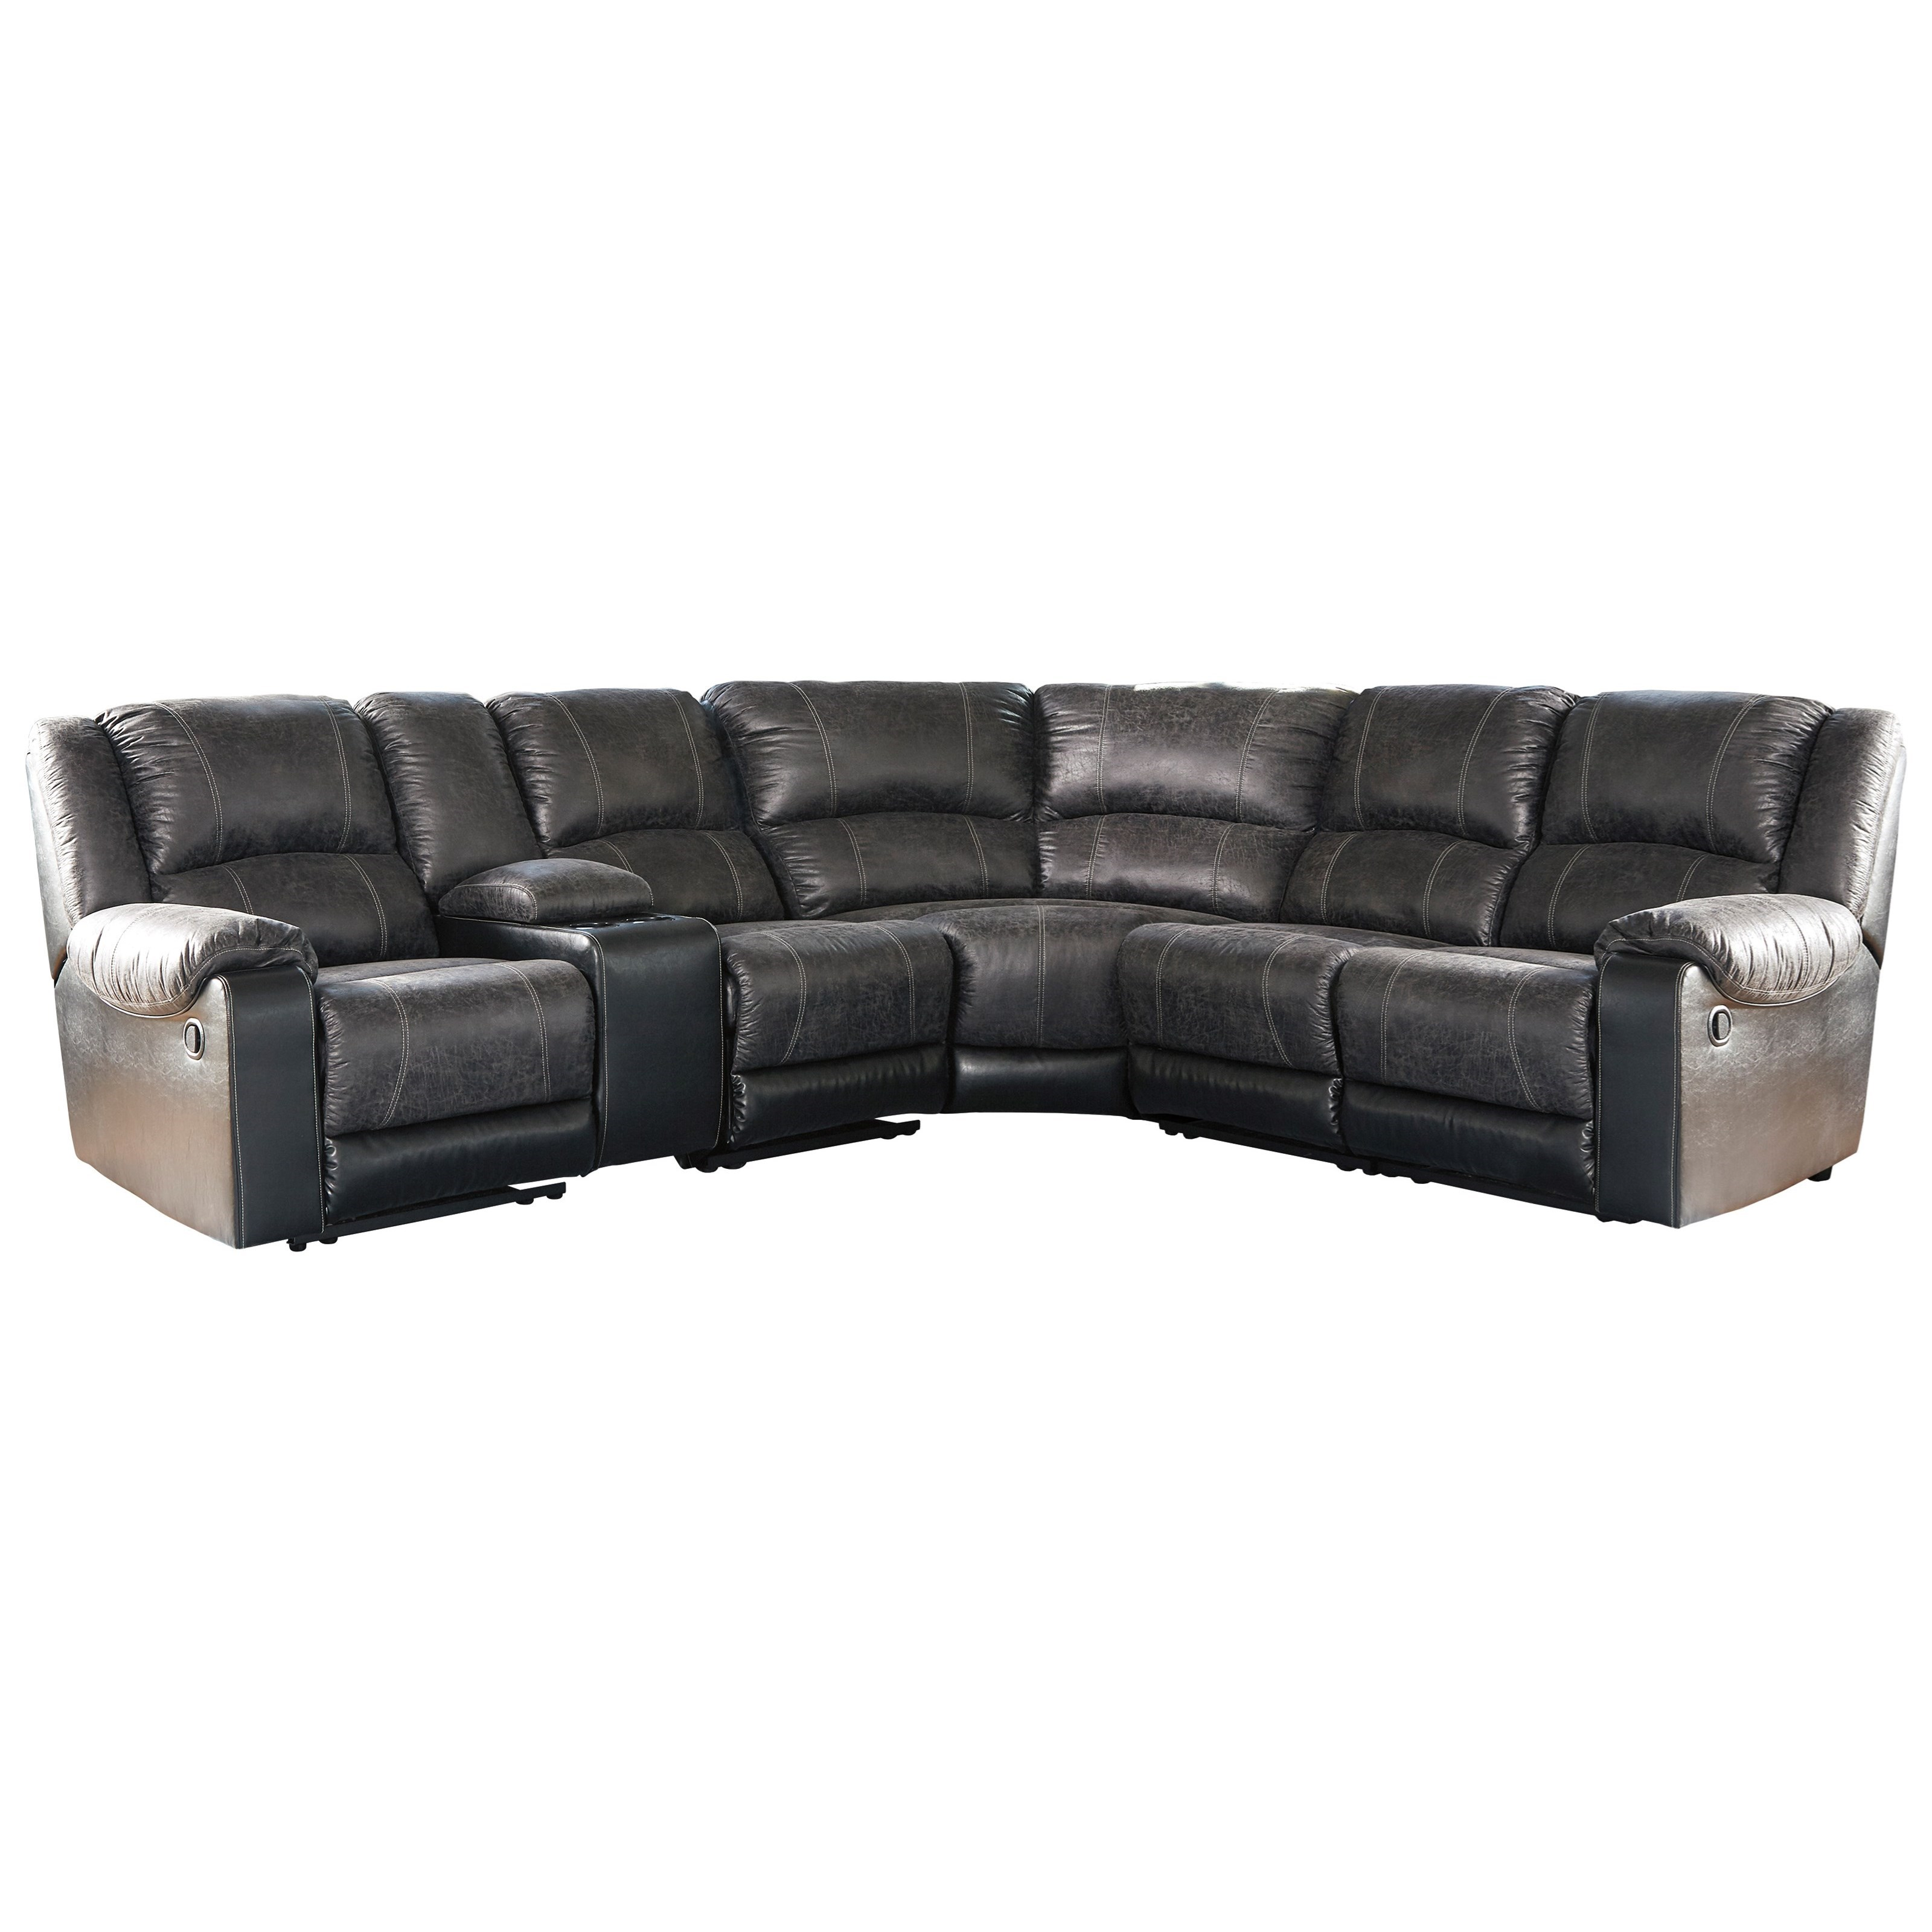 nantahala reclining sectional with console